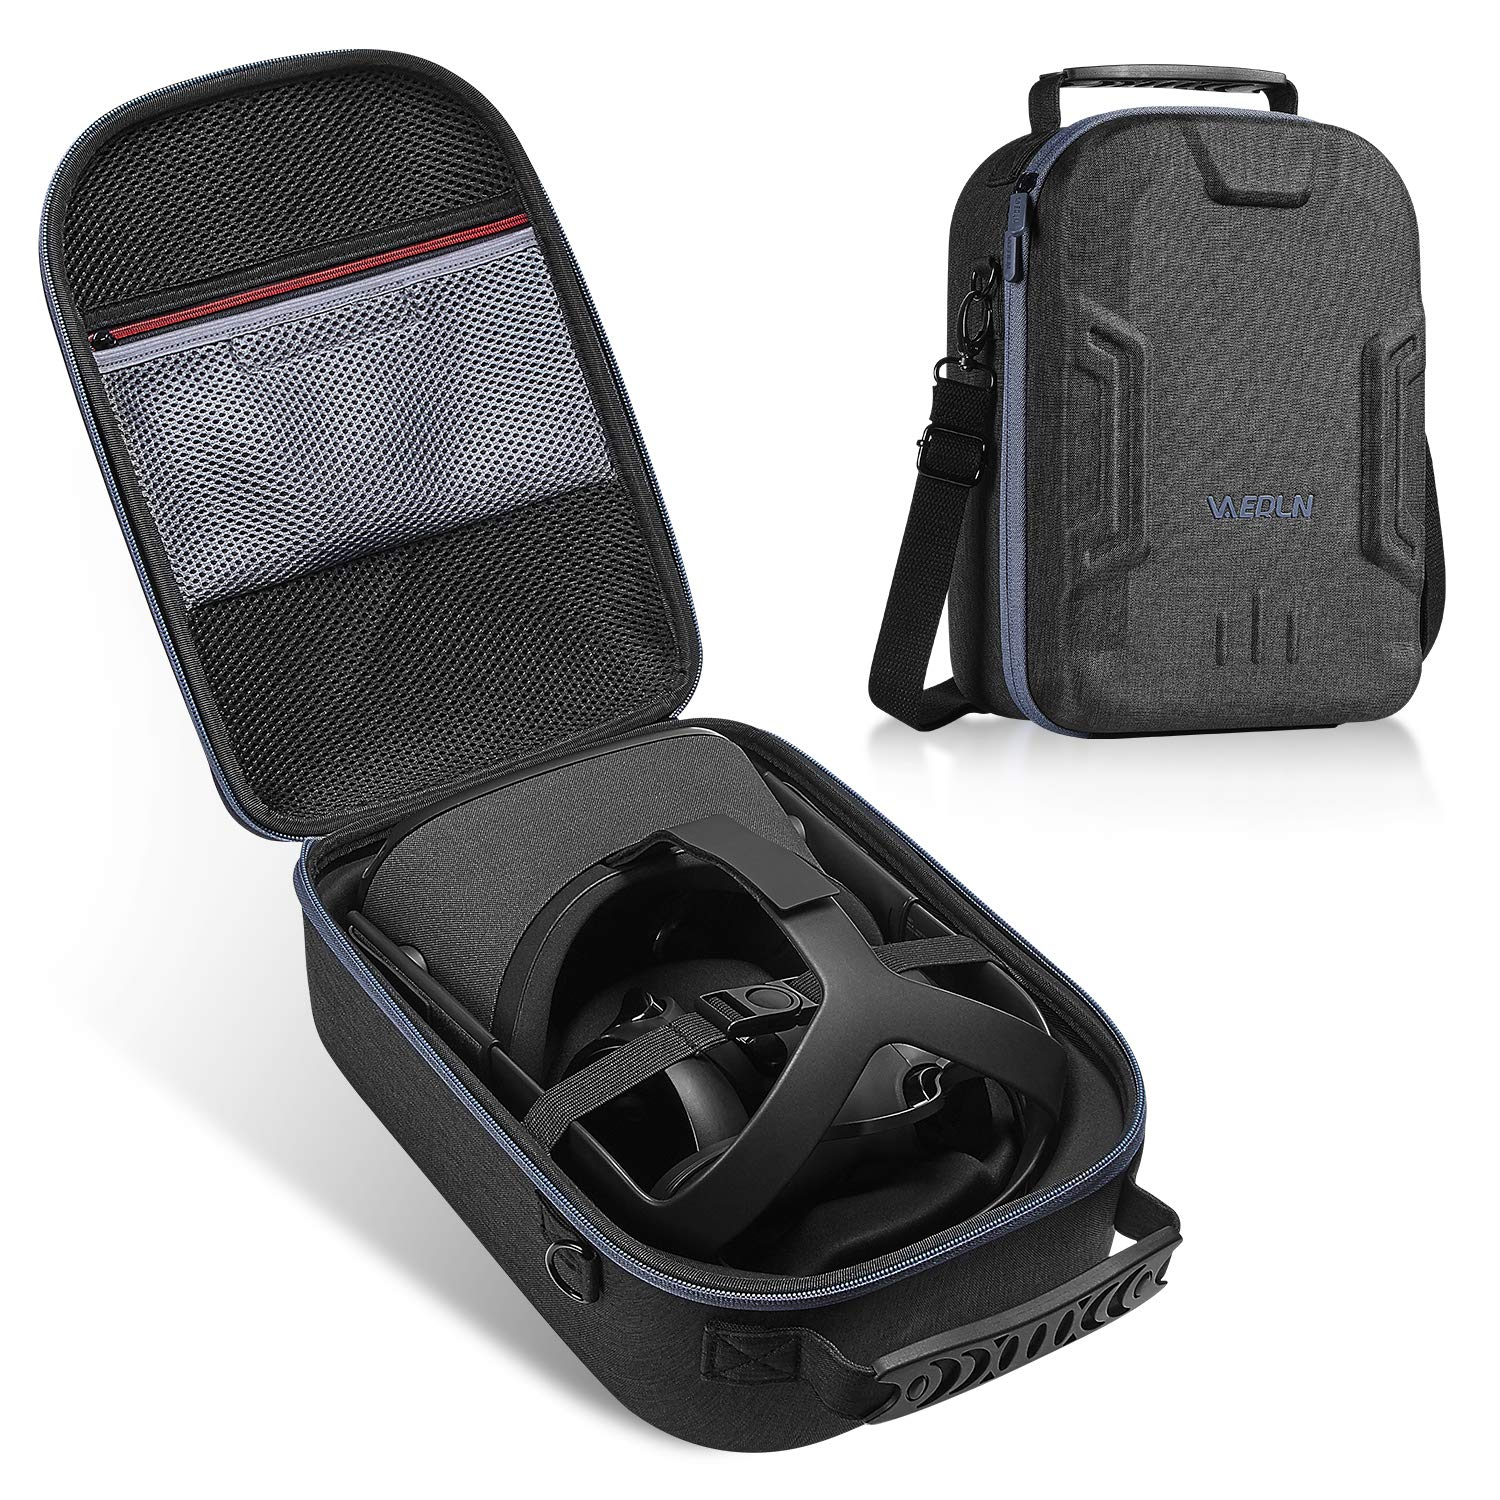 Vanerdun Case for Oculus Quest All-in-one VR Gaming Headset – Oculus Quest Travel case, Virtual Reality Protective Bag